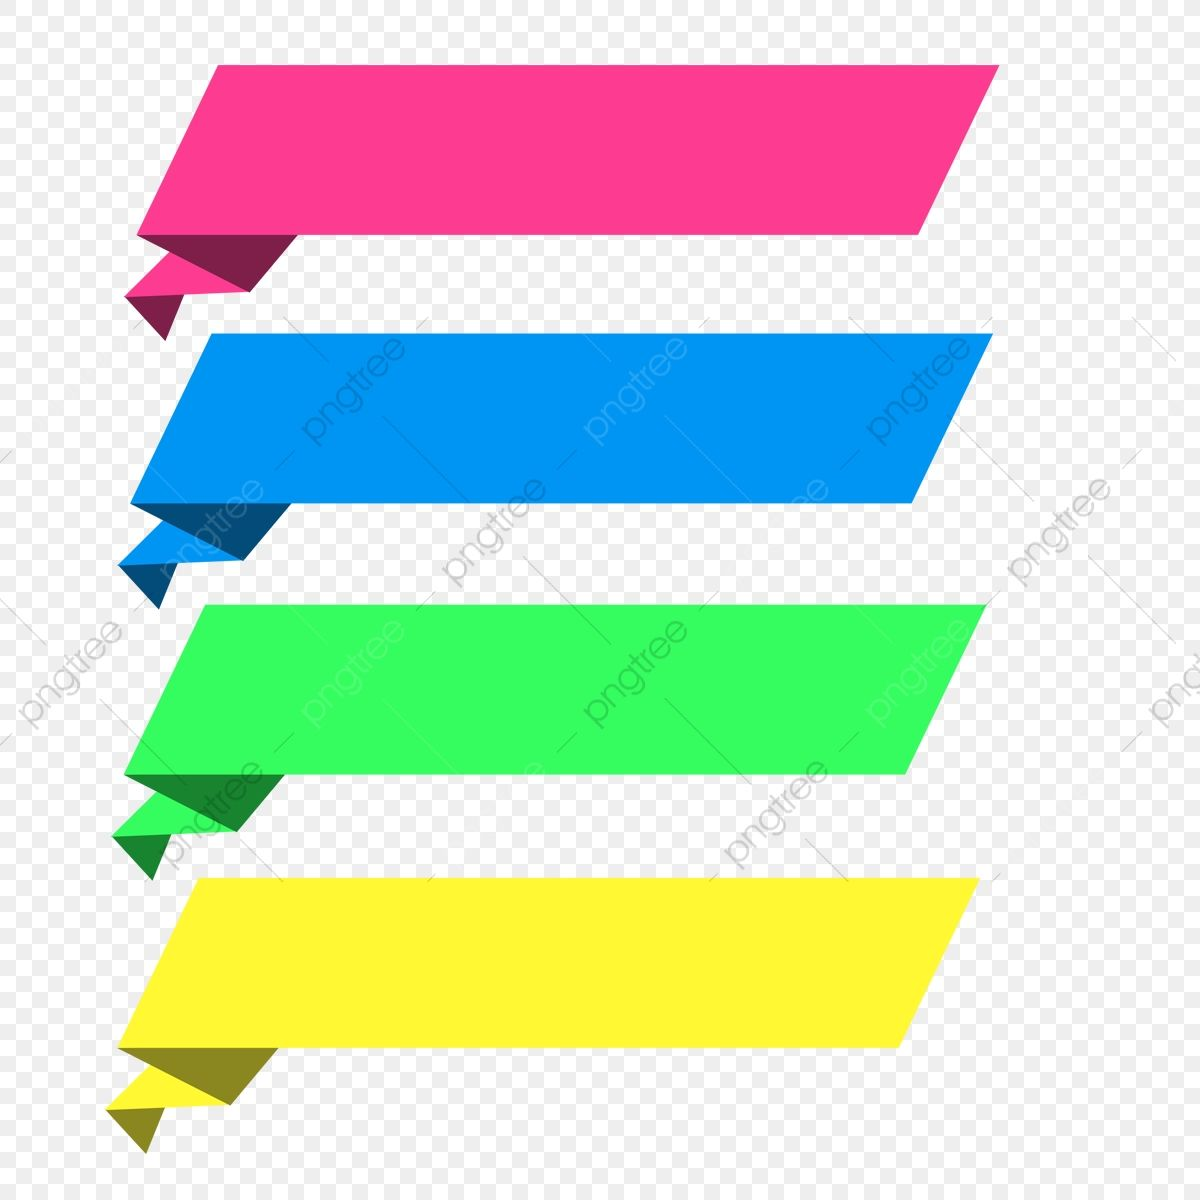 Vector Origami Banner Design Banner Icons Png Text Box Png Transparent Clipart Image And Psd File For Free Down In 2021 Banner Design Best Banner Design Text Design